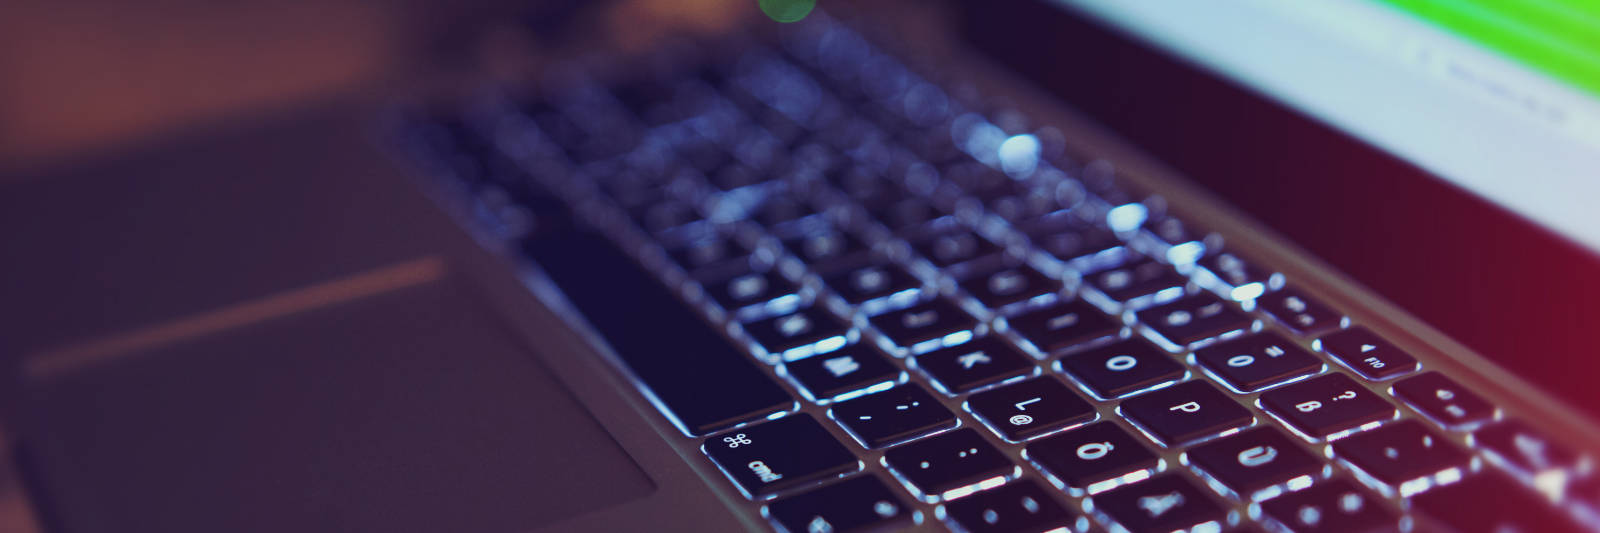 Image of a MacBook Pro with backlit keyboard in the dark